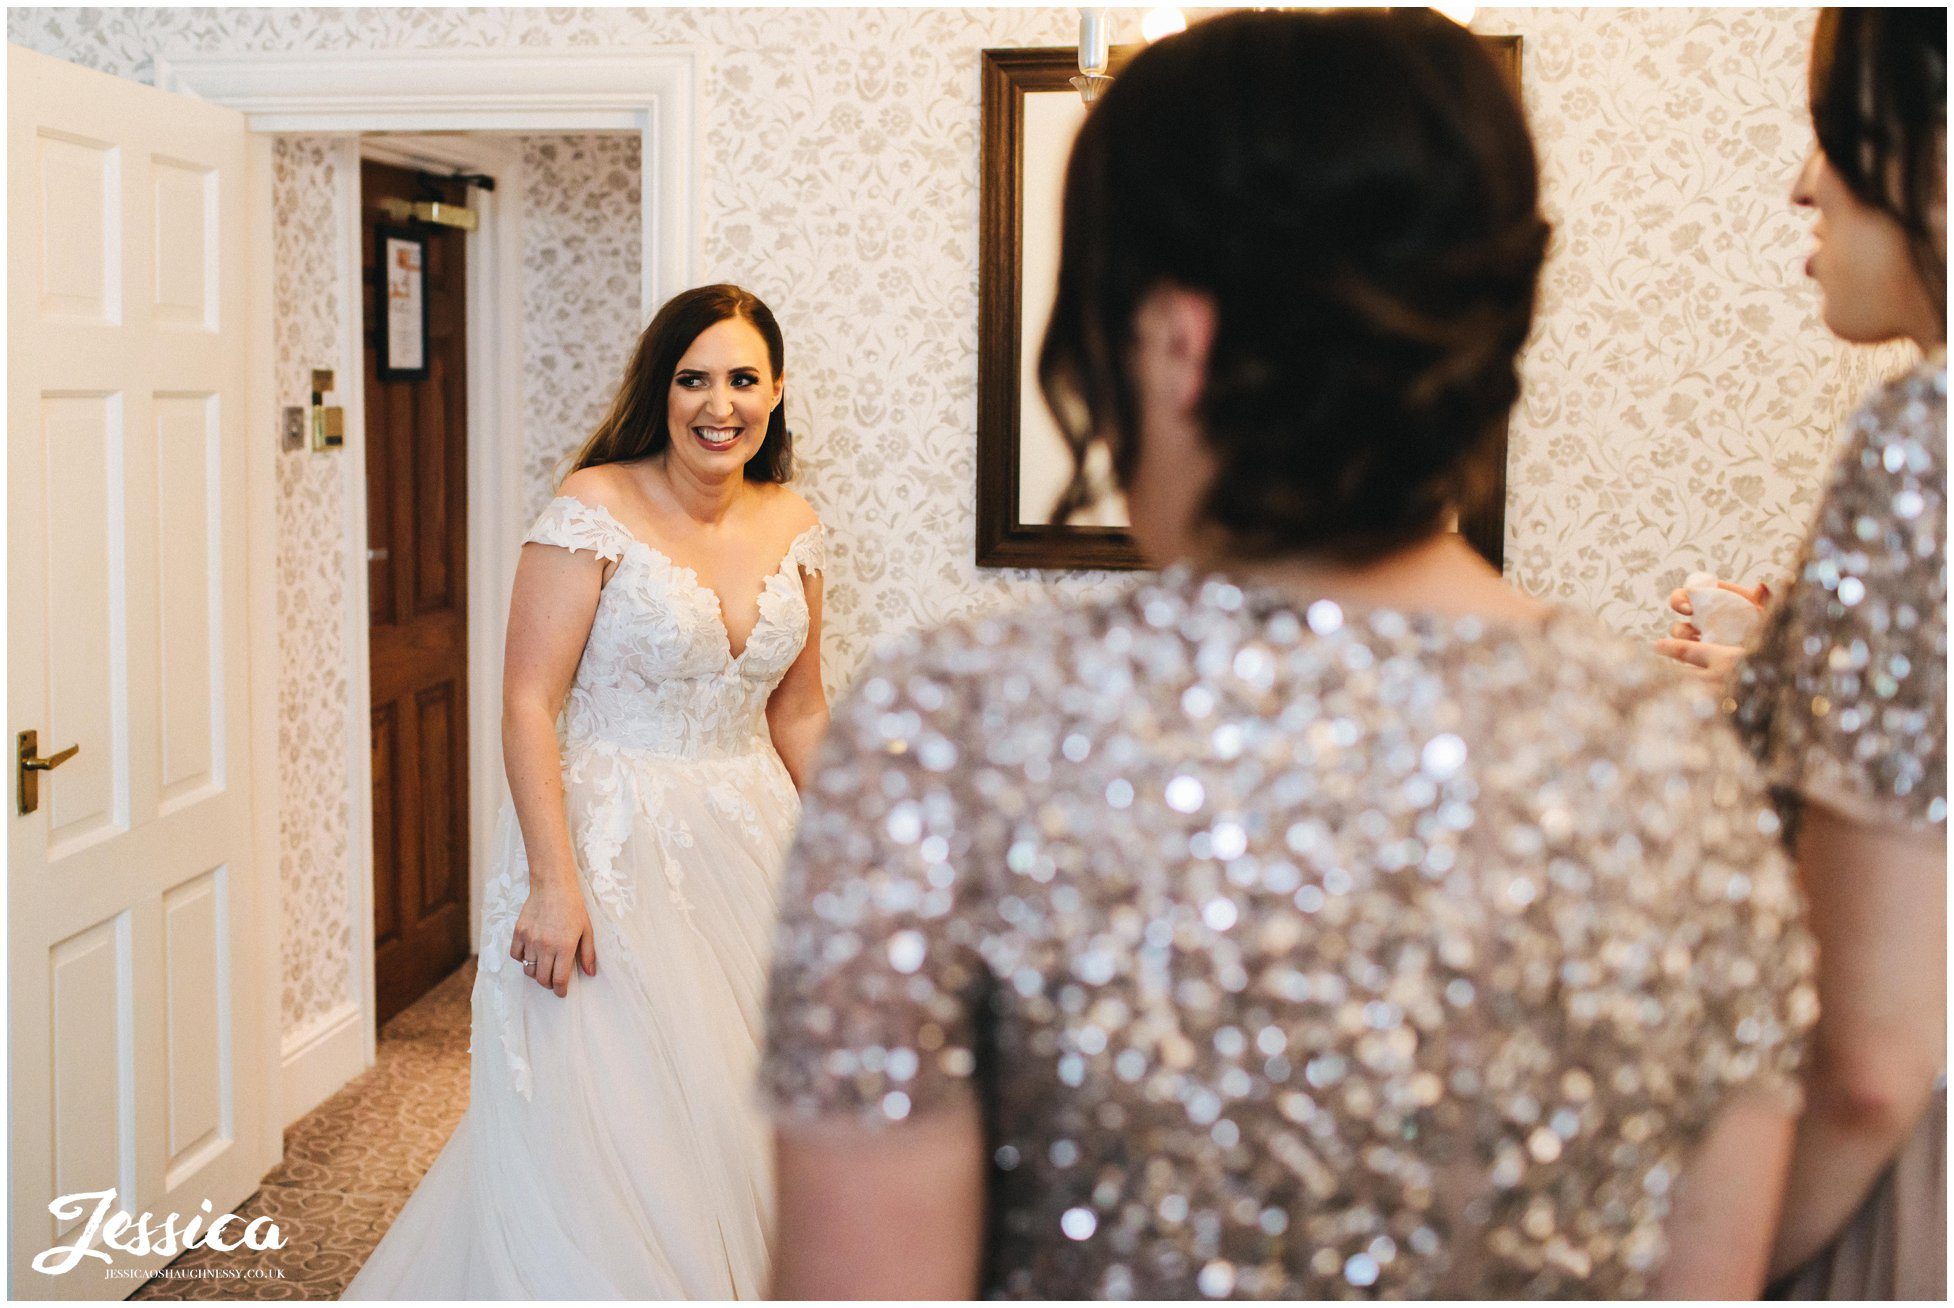 bride walks in to show her bridesmaids her wedding dress